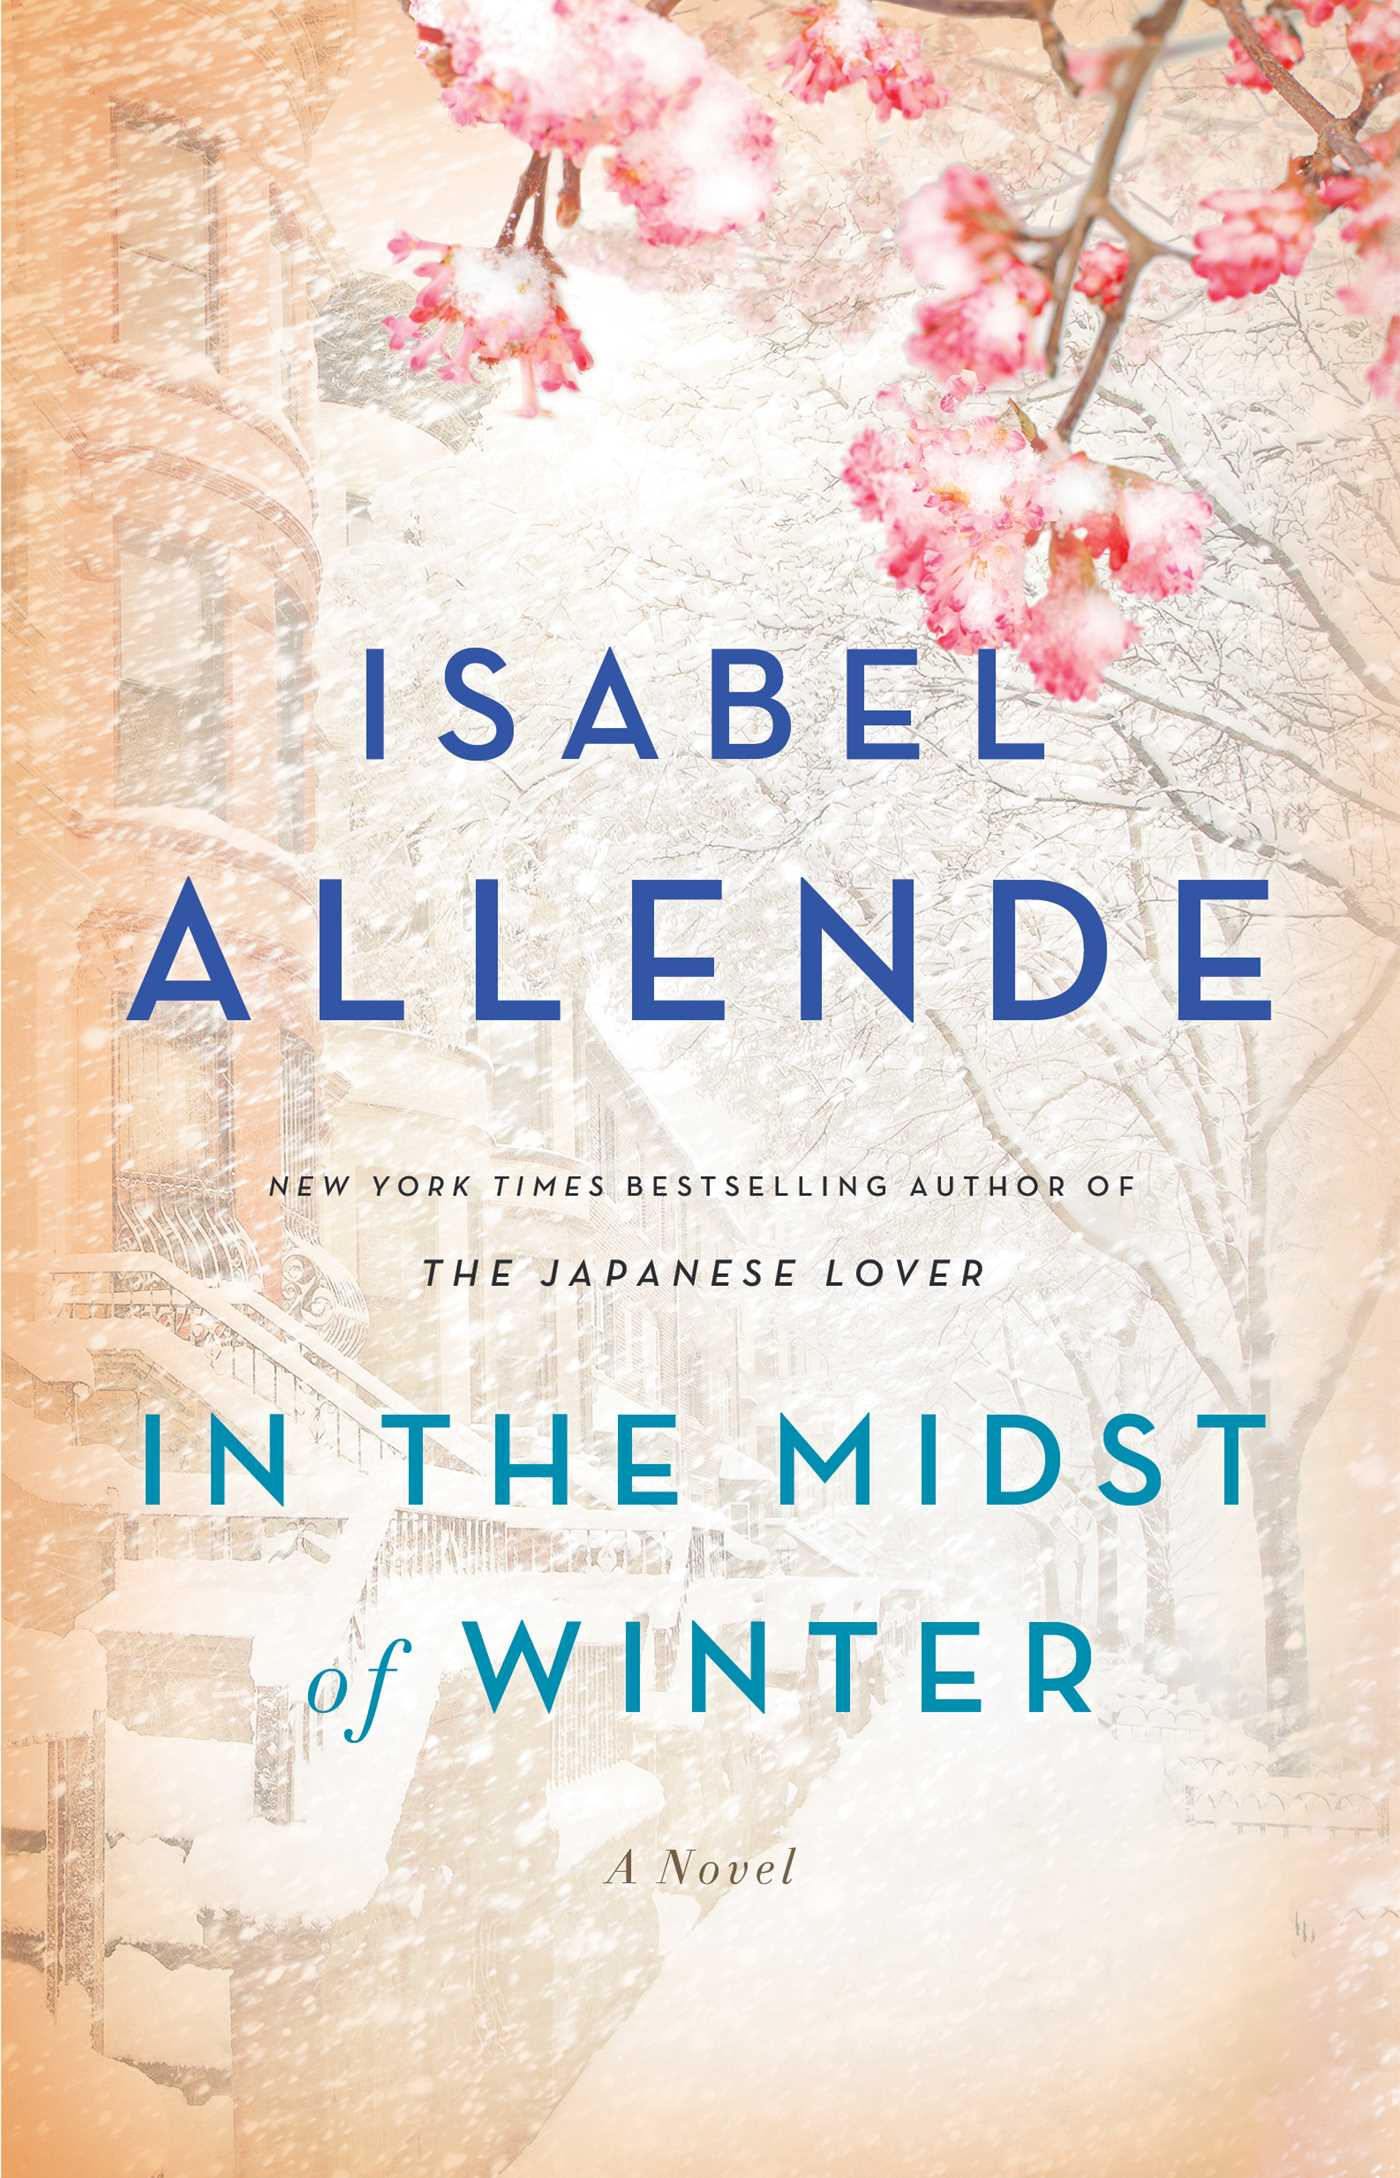 In the midst of winter 9781501183263 hr